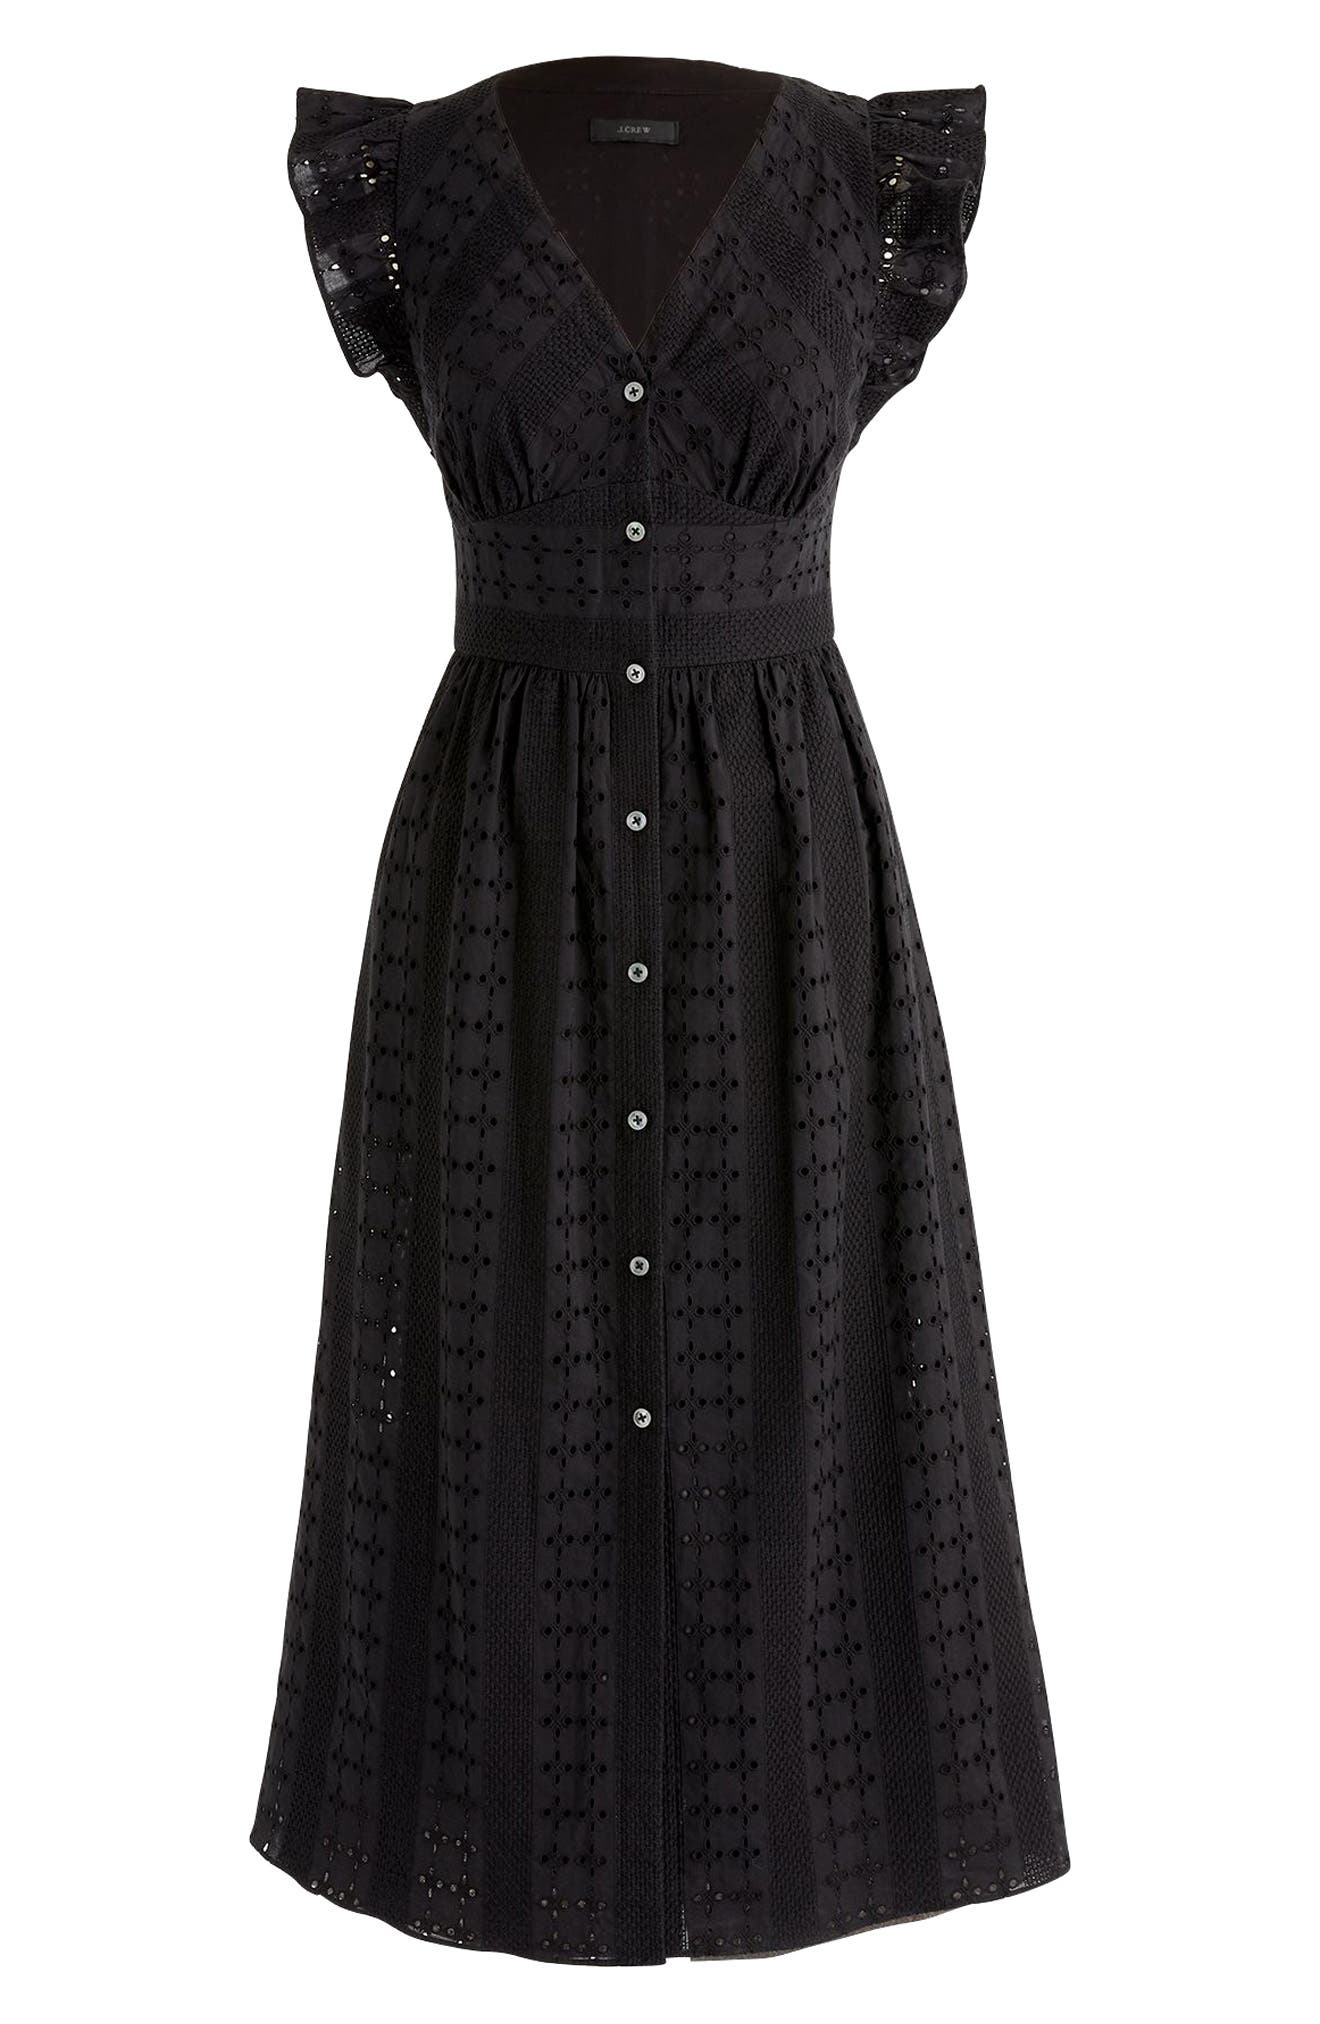 Ruffle Sleeve Eyelet Dress,                             Alternate thumbnail 3, color,                             001